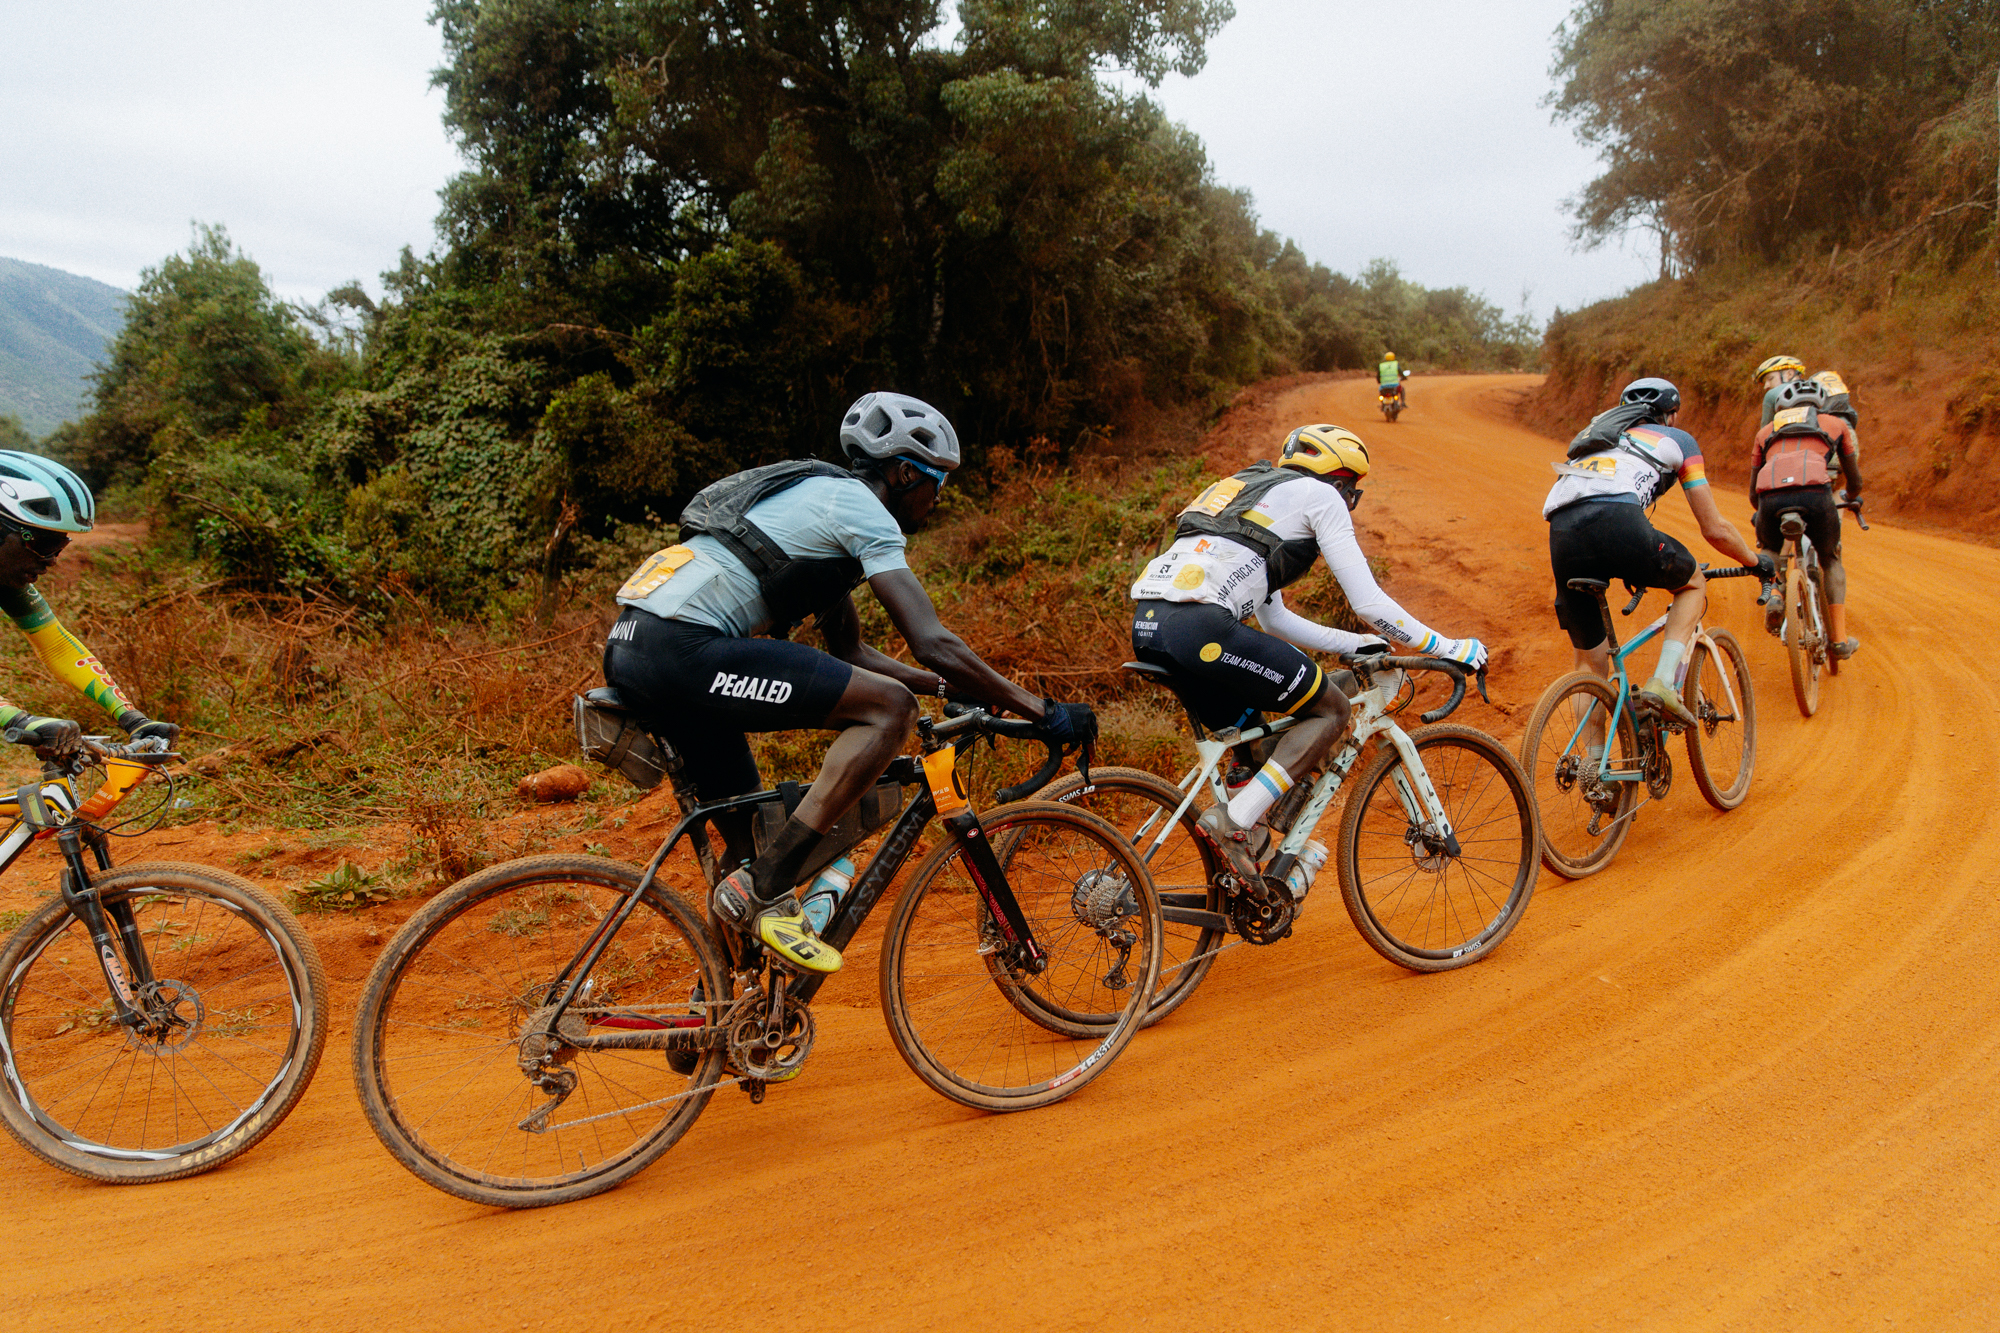 Wahoo Sports, Team AMANI Announce Special East African Team to Race on US Gravel